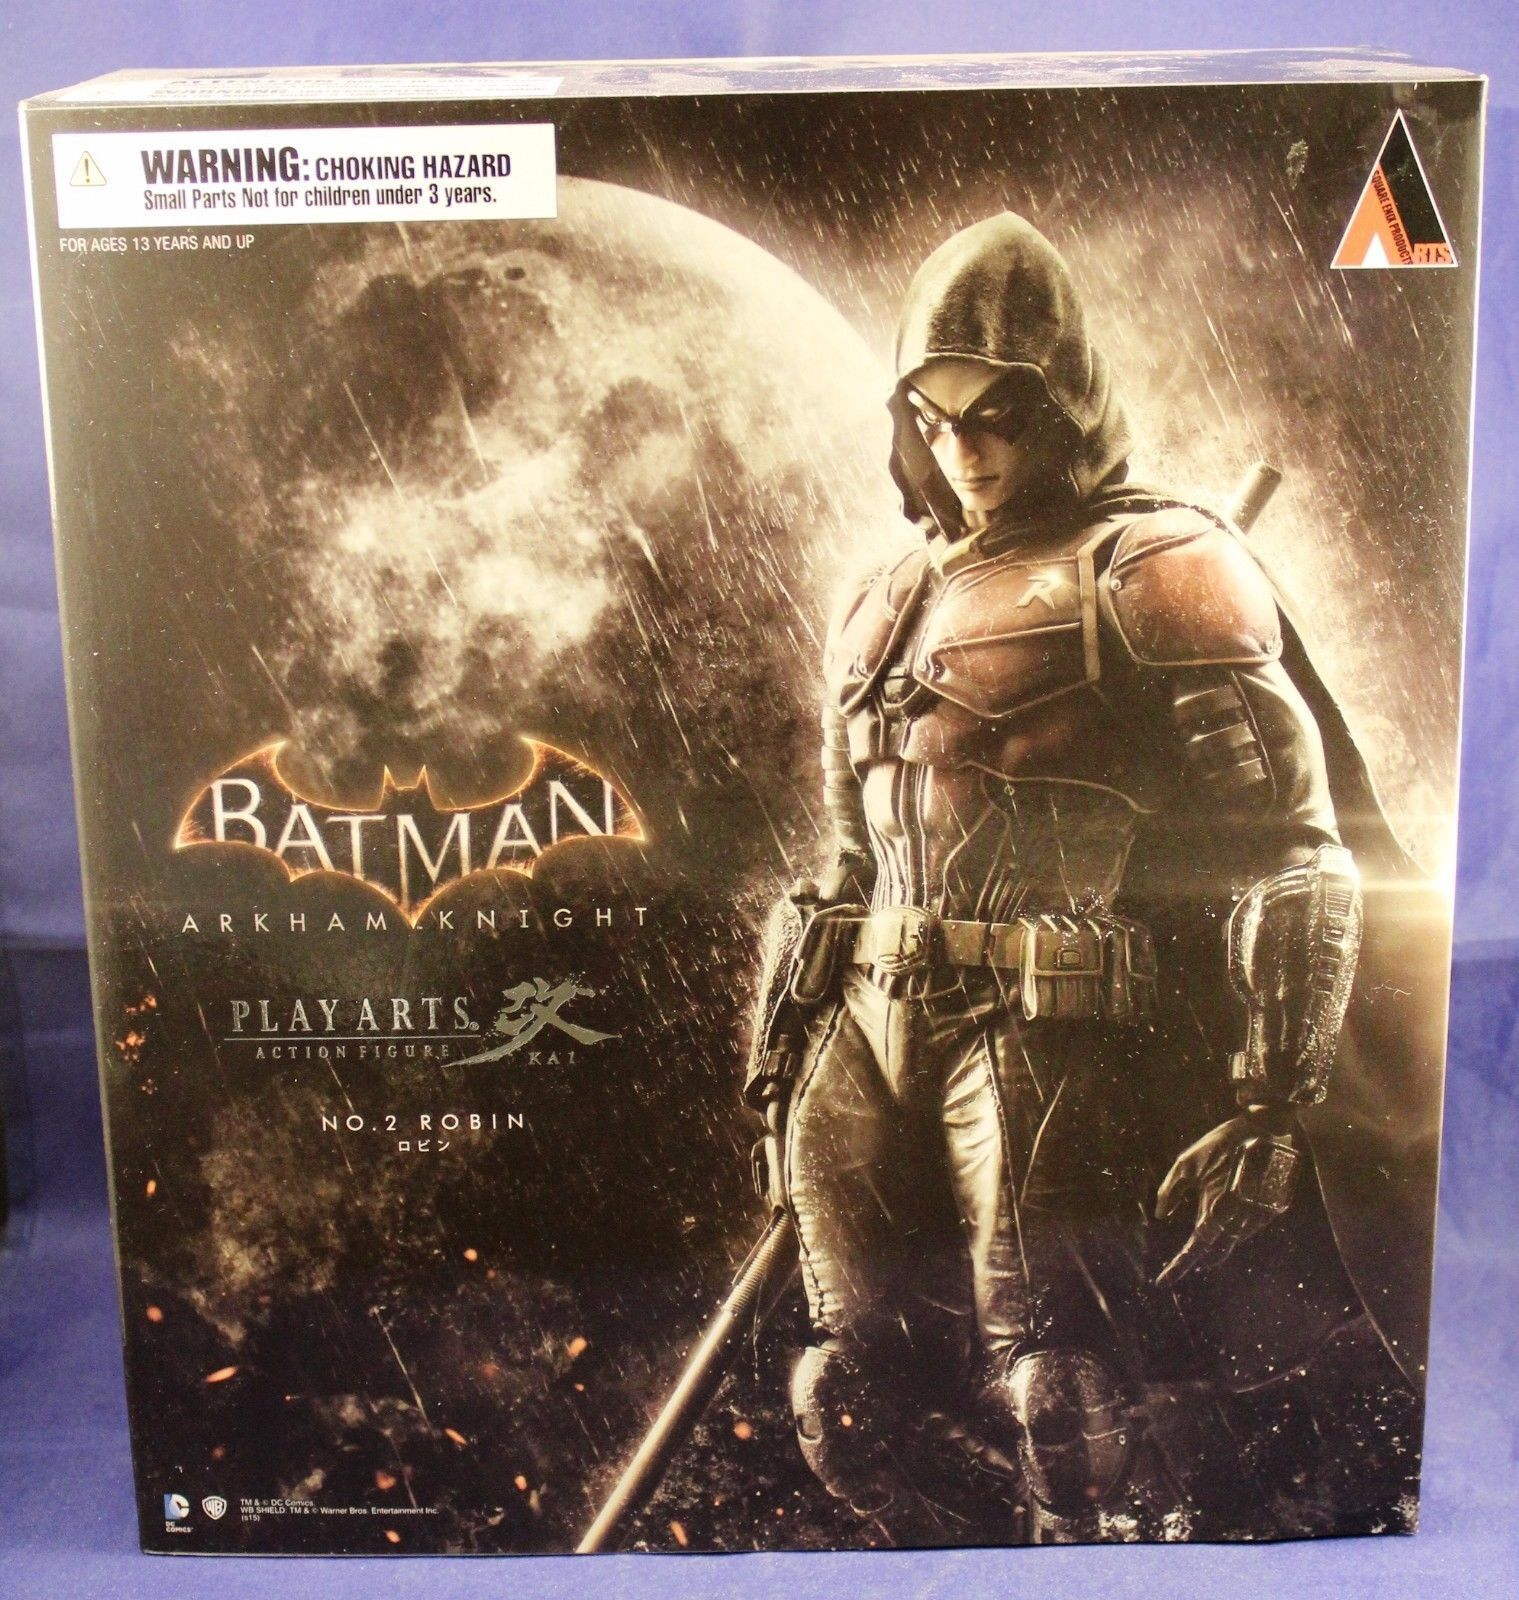 Play Arts Kai Batman Arkham Knight Robin Action Figure Square Enix NO. 2